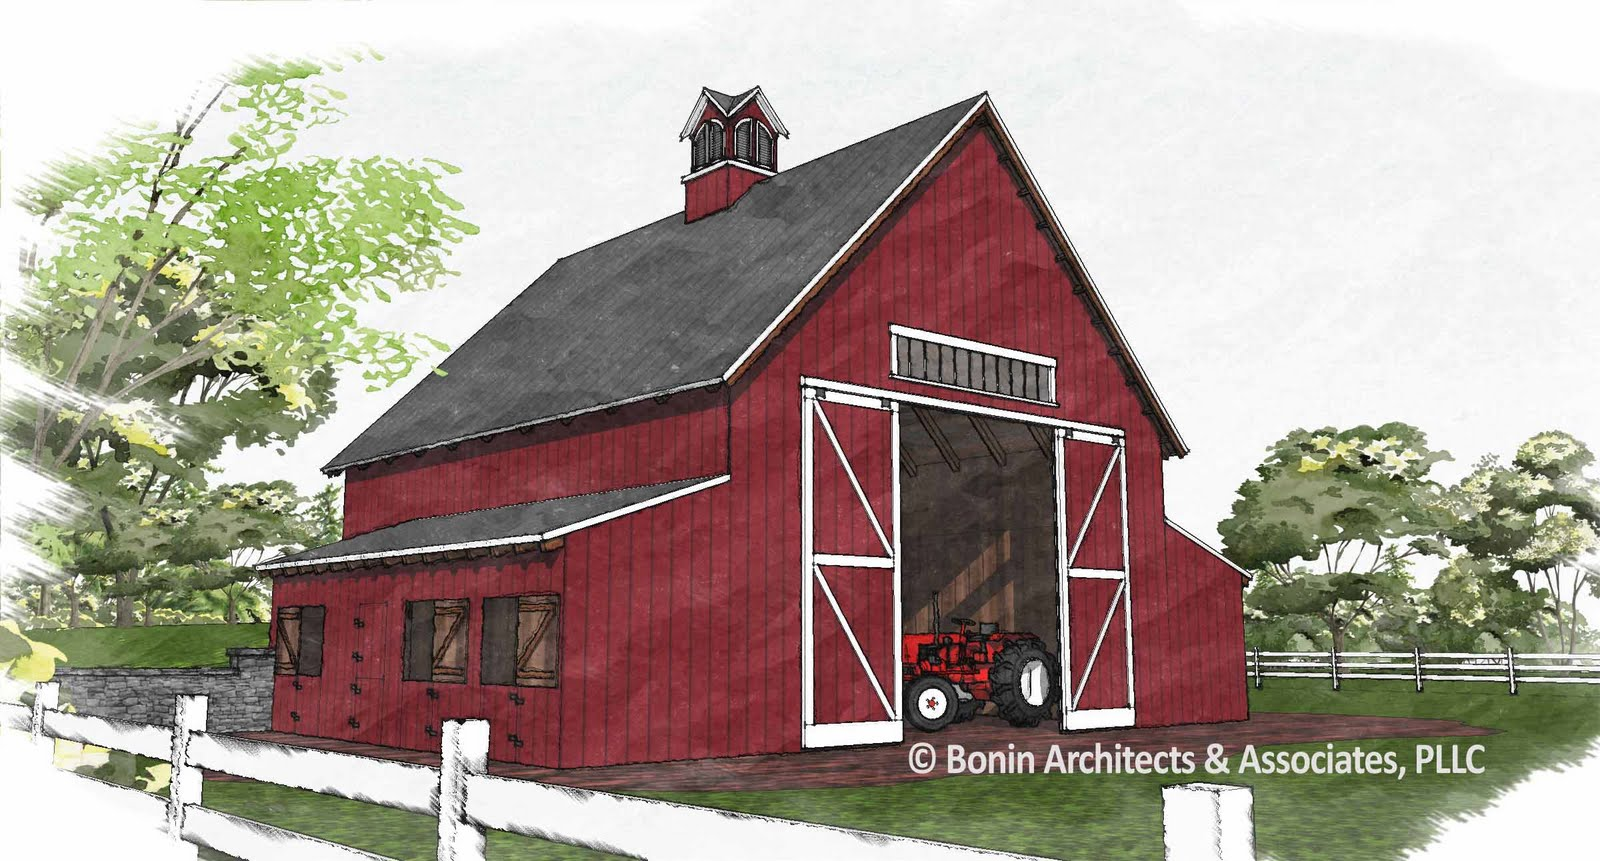 timber frame barn - photo #25